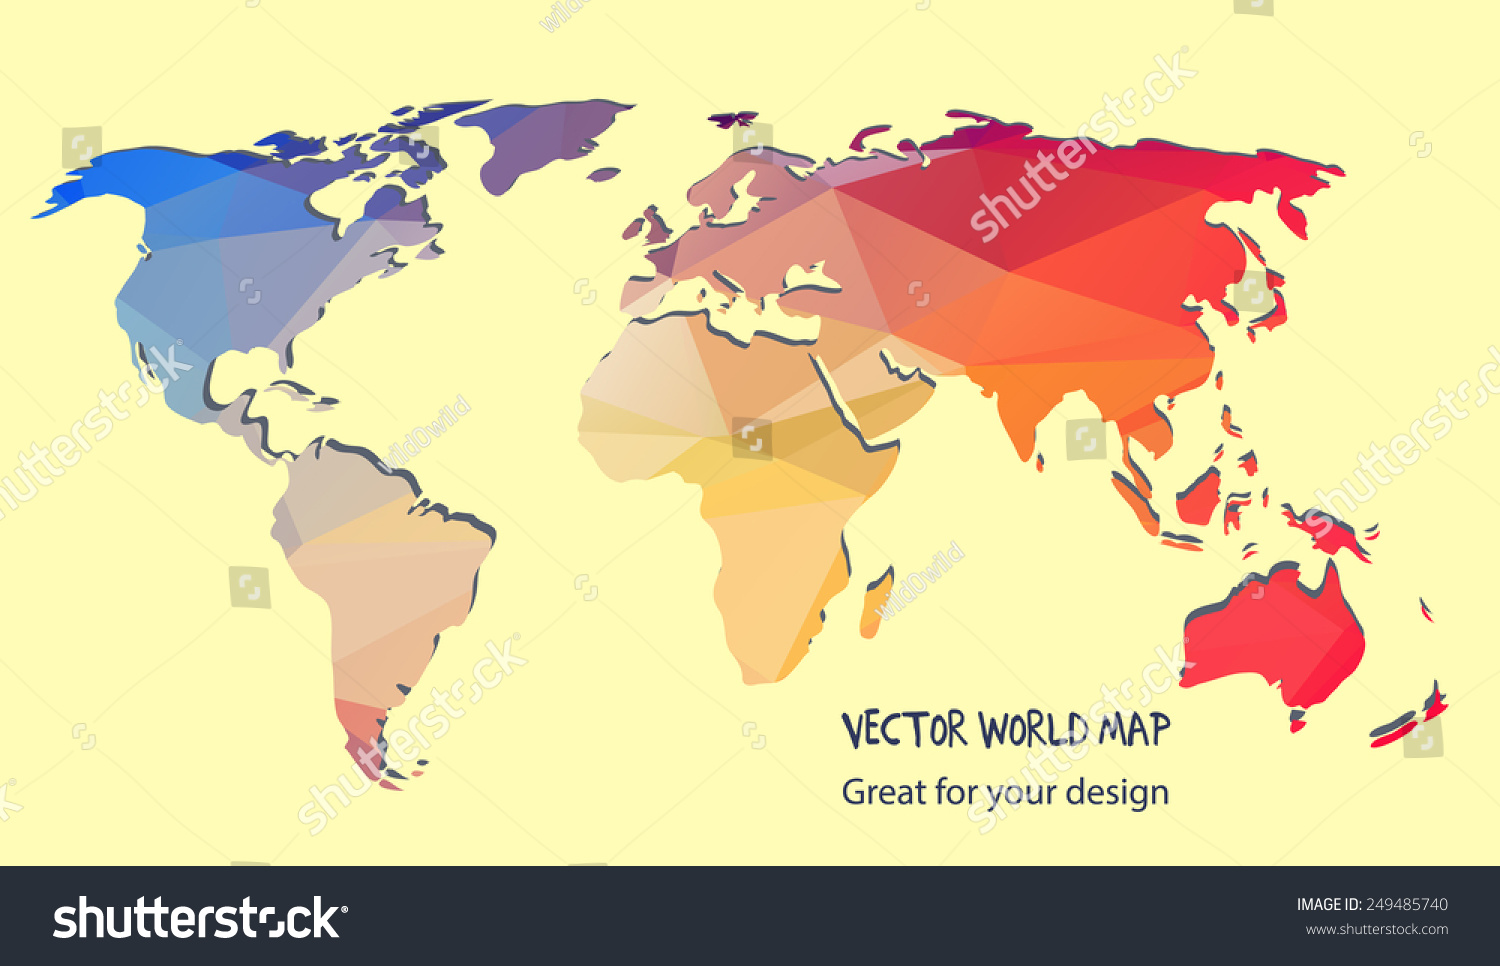 Vector world map triangle set stock vector 249485740 shutterstock vector world map triangle set gumiabroncs Image collections